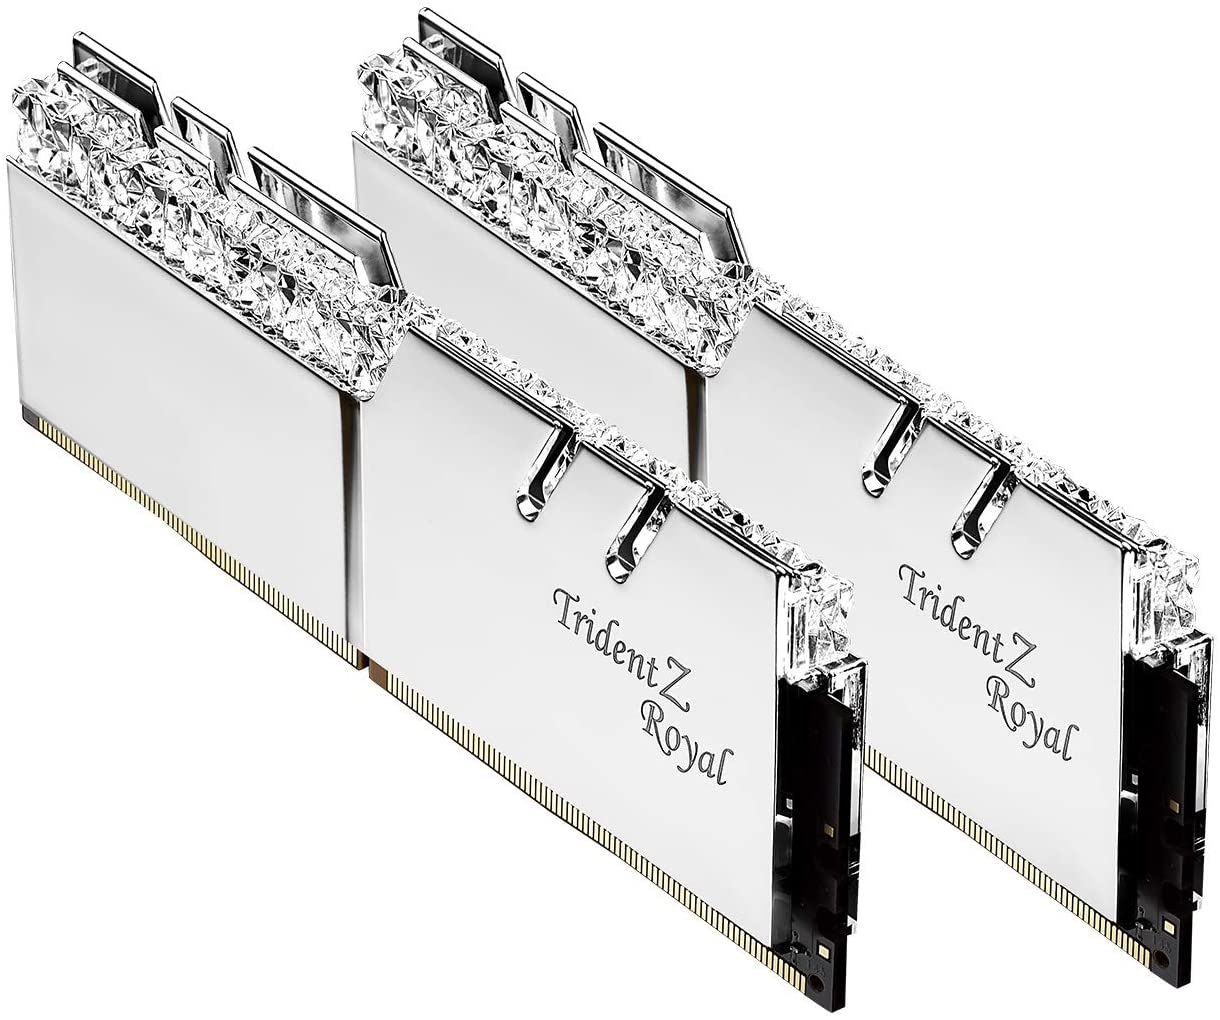 G.Skill 16GB DDR4 Trident Z Royal Silver 3200Mhz PC4-25600 CL16 1.35V Dual Channel Kit (2x8GB)